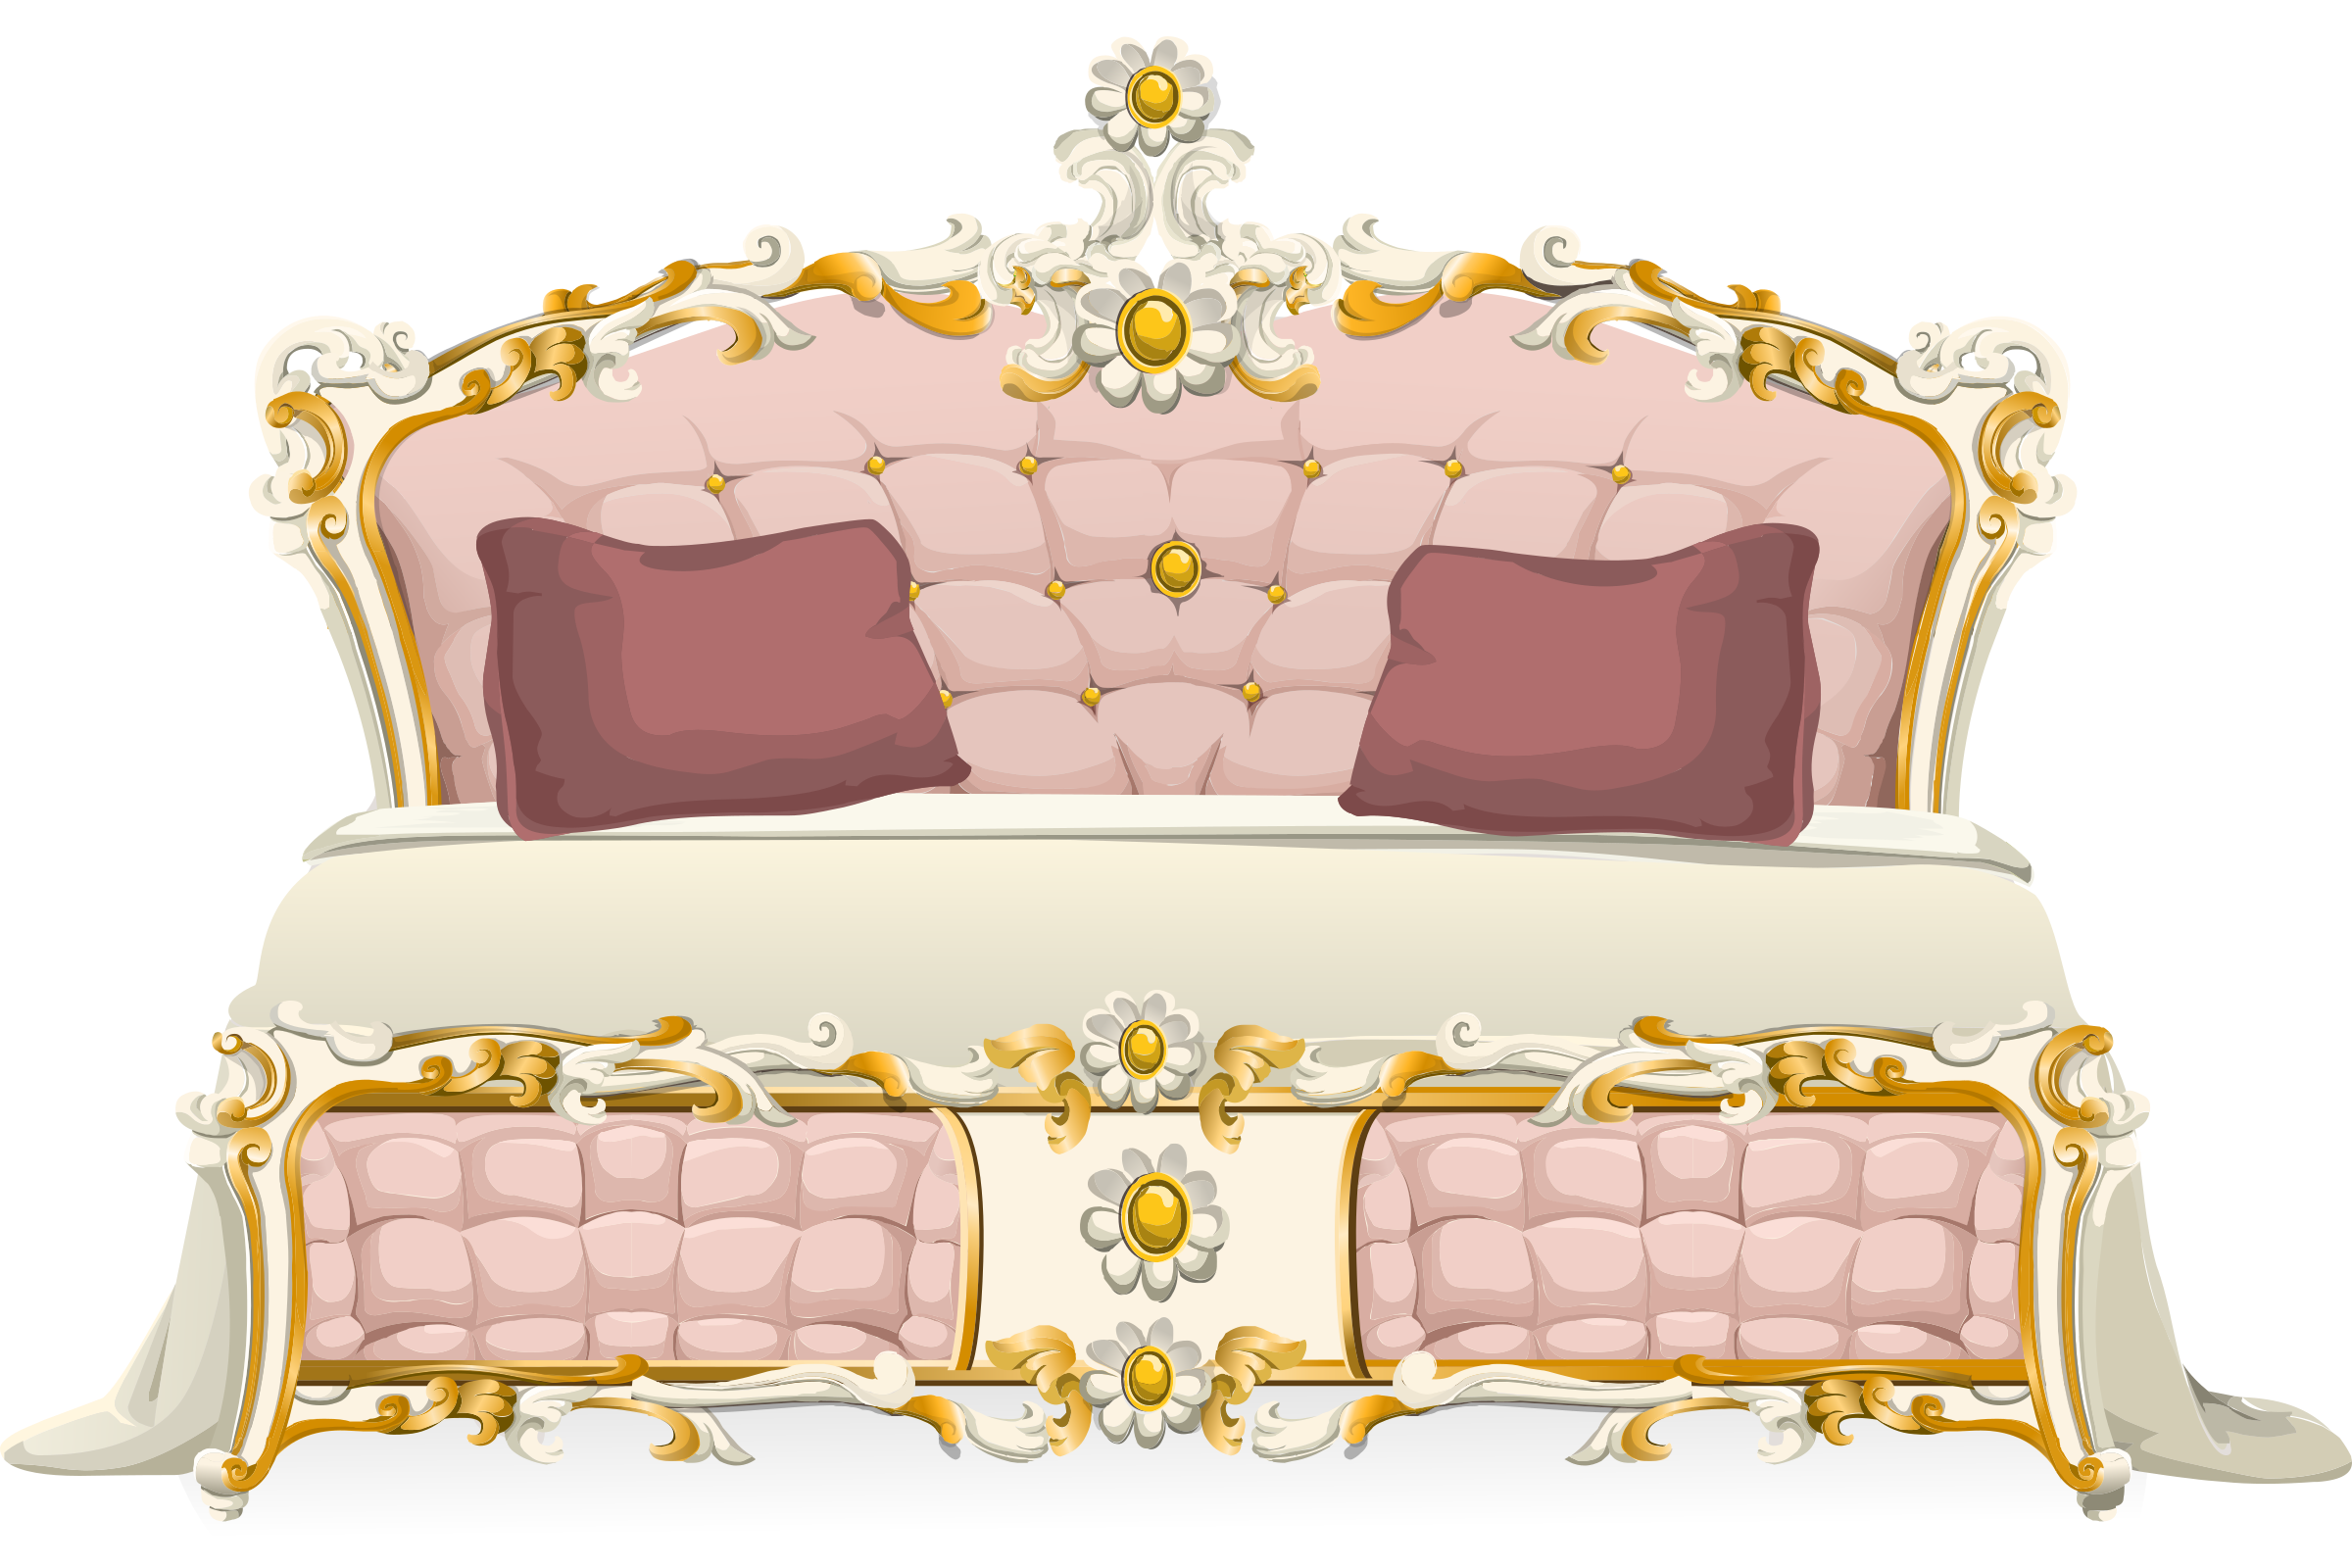 Clipart bed modern bed. Pink baroque from glitch